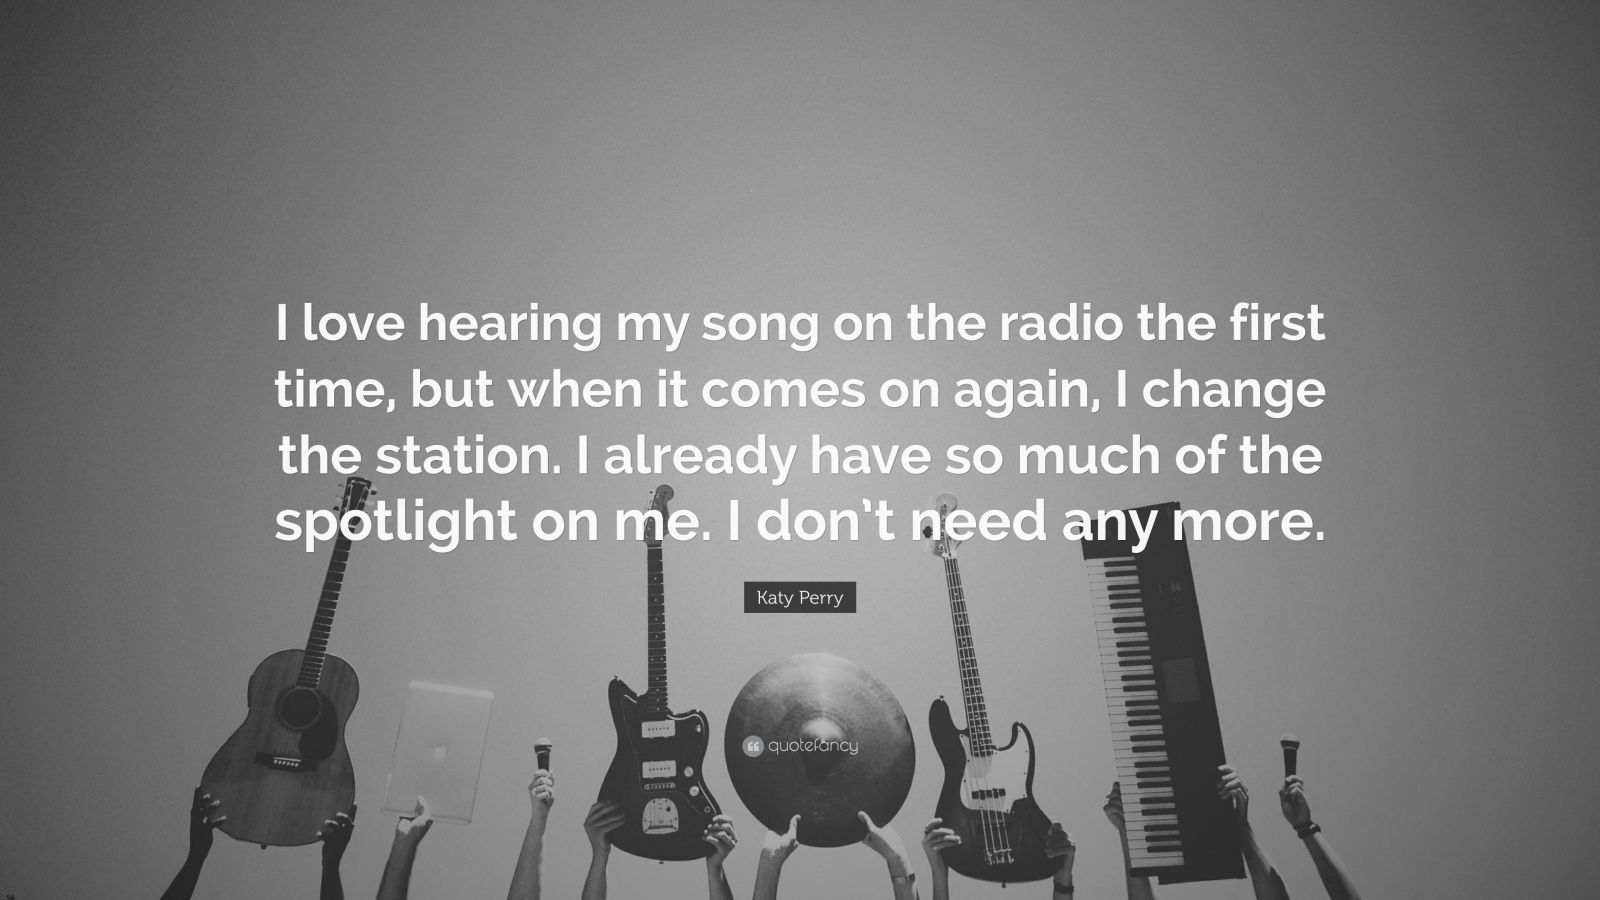 """Katy Perry Quote: """"I love hearing my song on the radio the first time, but when it comes on again, I change the station. I already have so much of the spotlight on me. I don't need any more."""""""